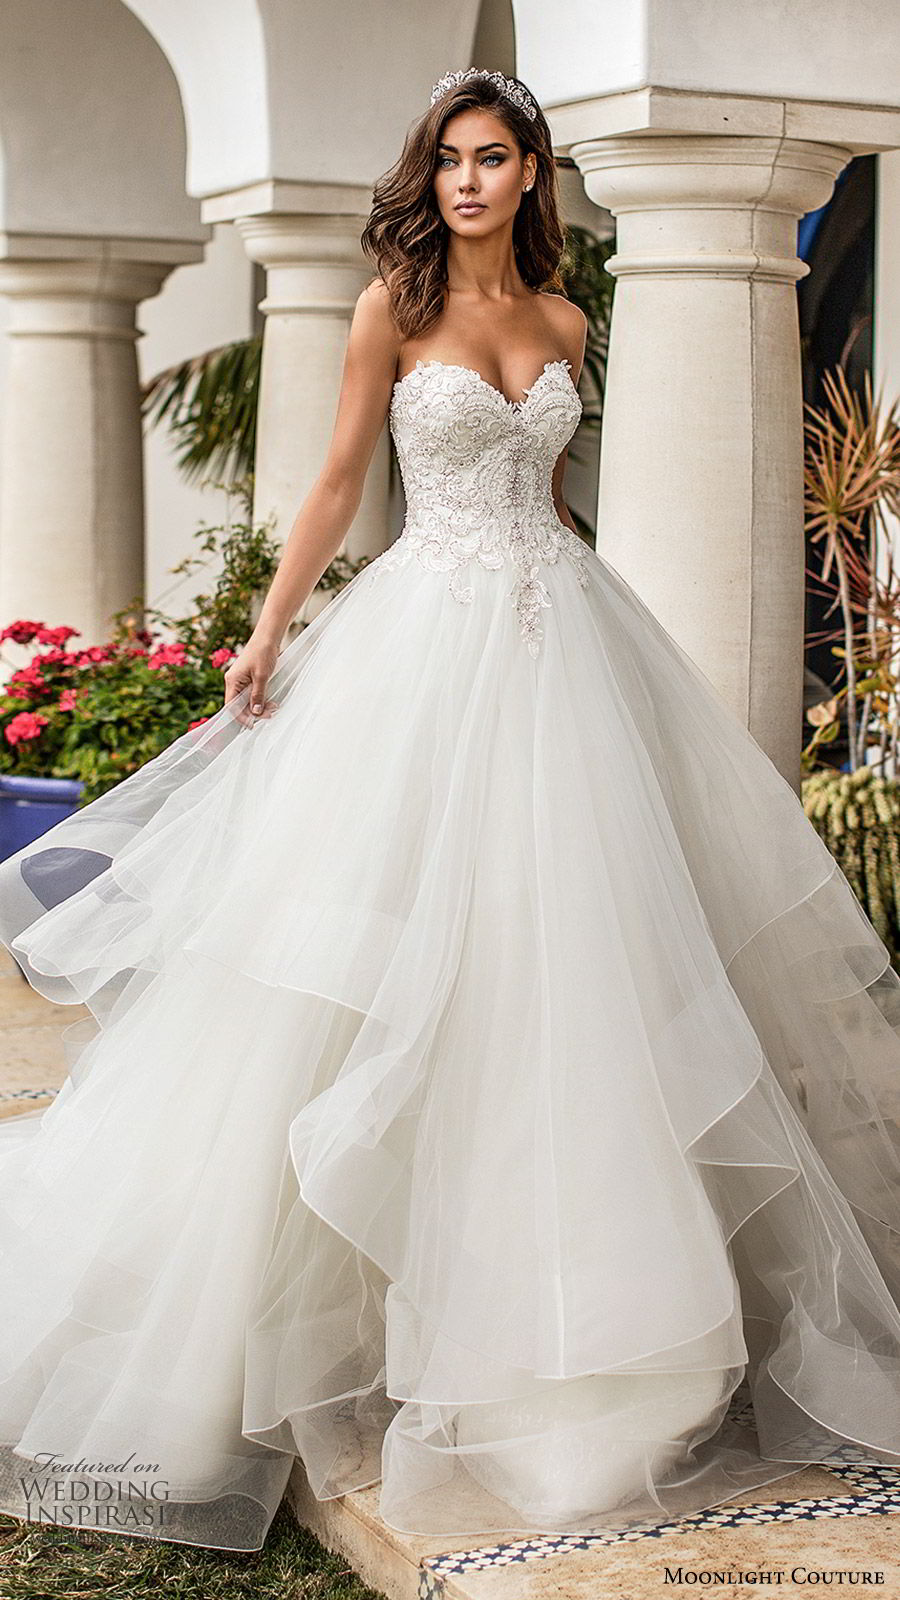 moonlight couture fall 2019 bridal strapless sweetheart embellished bodice tiered skirt a line ball gown wedding dress (10) romantic princess chapel train mv